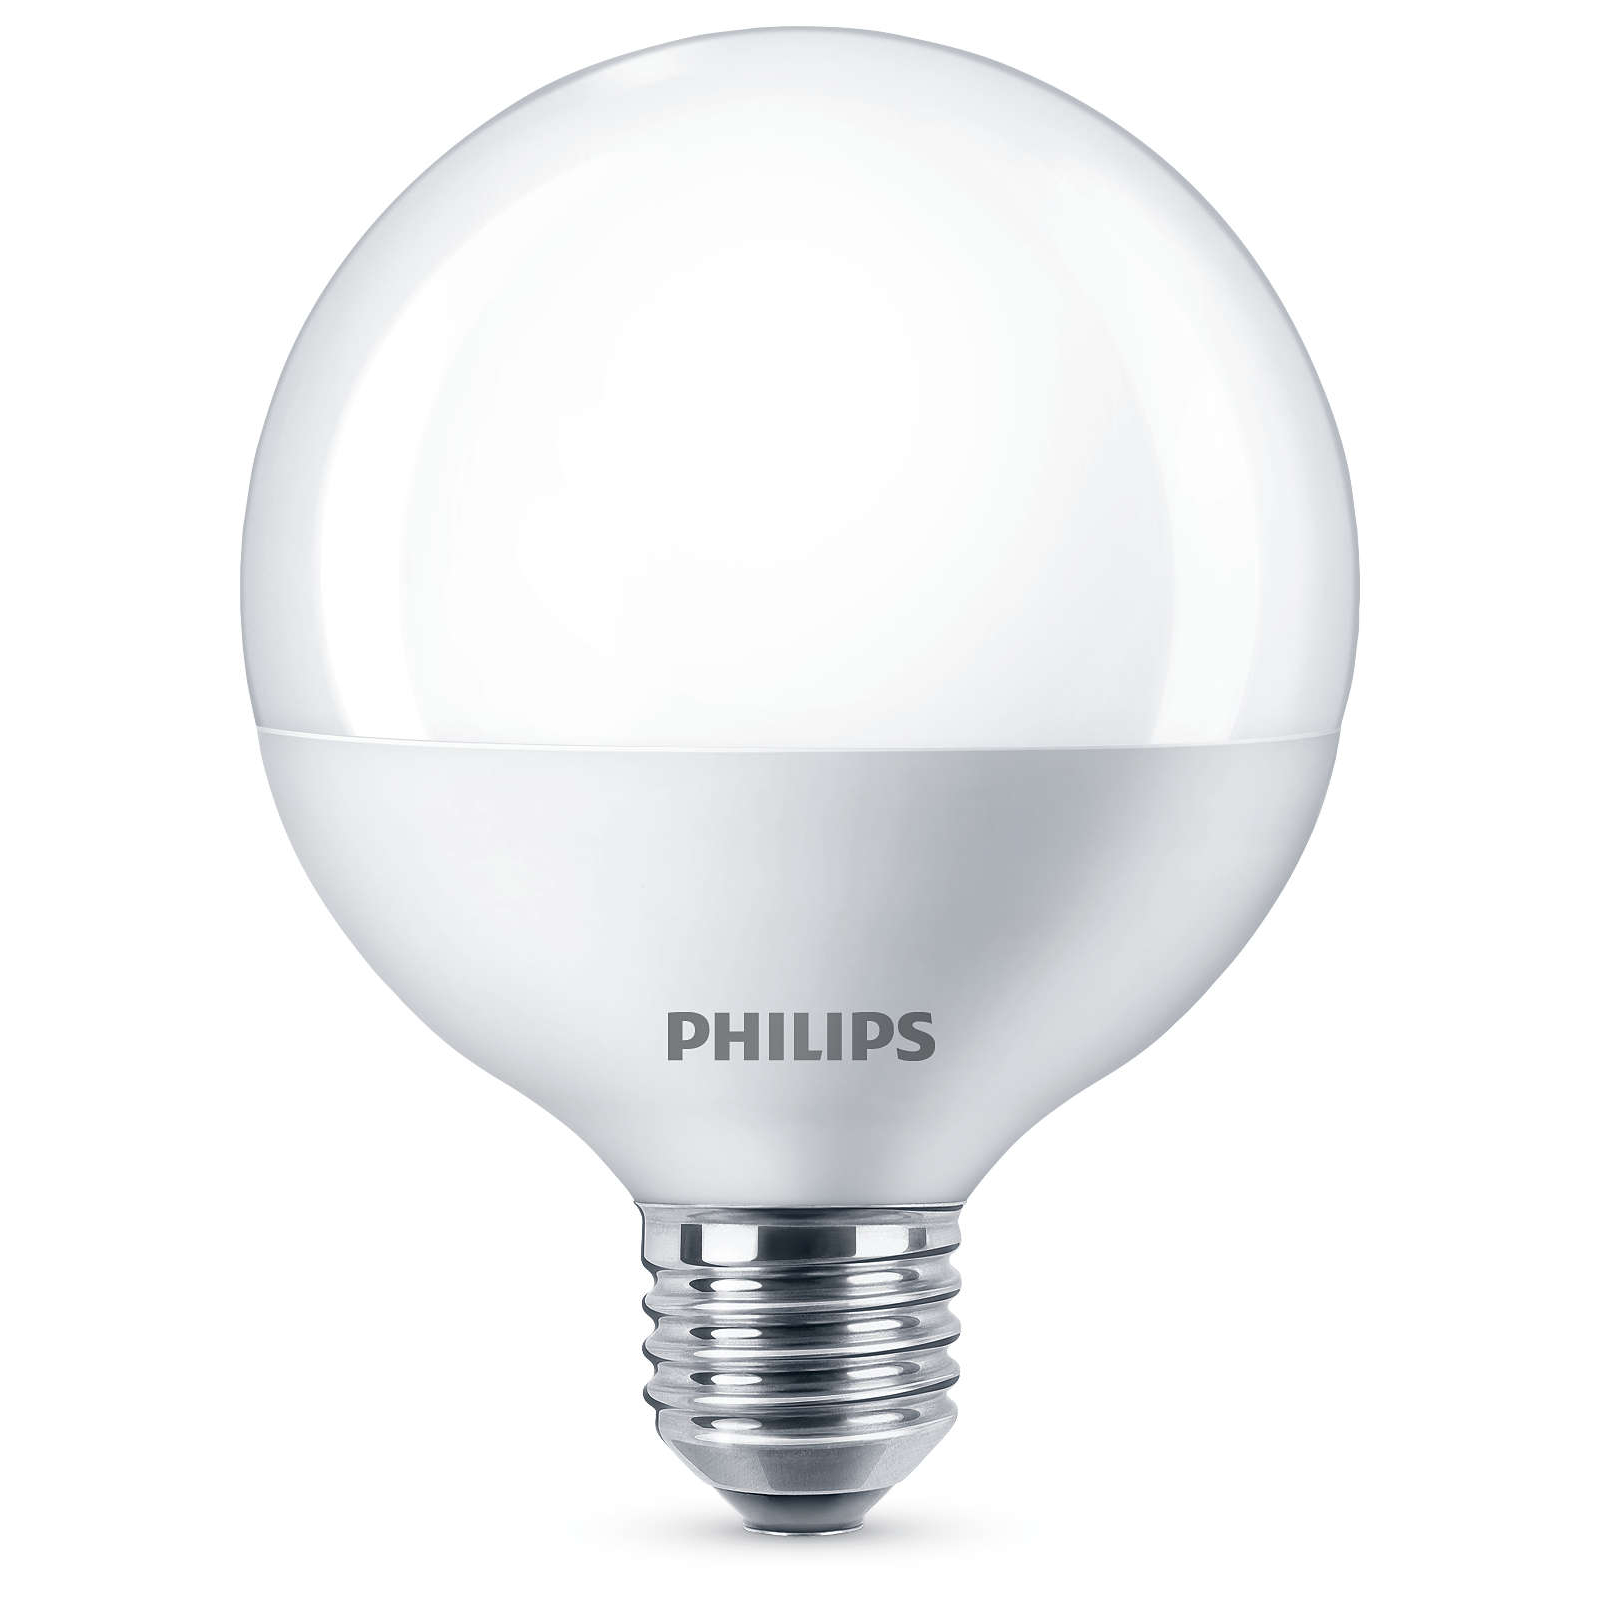 philips led globe 60w g93 frosted e27 edison screw light bulb 806lm warm white ebay. Black Bedroom Furniture Sets. Home Design Ideas